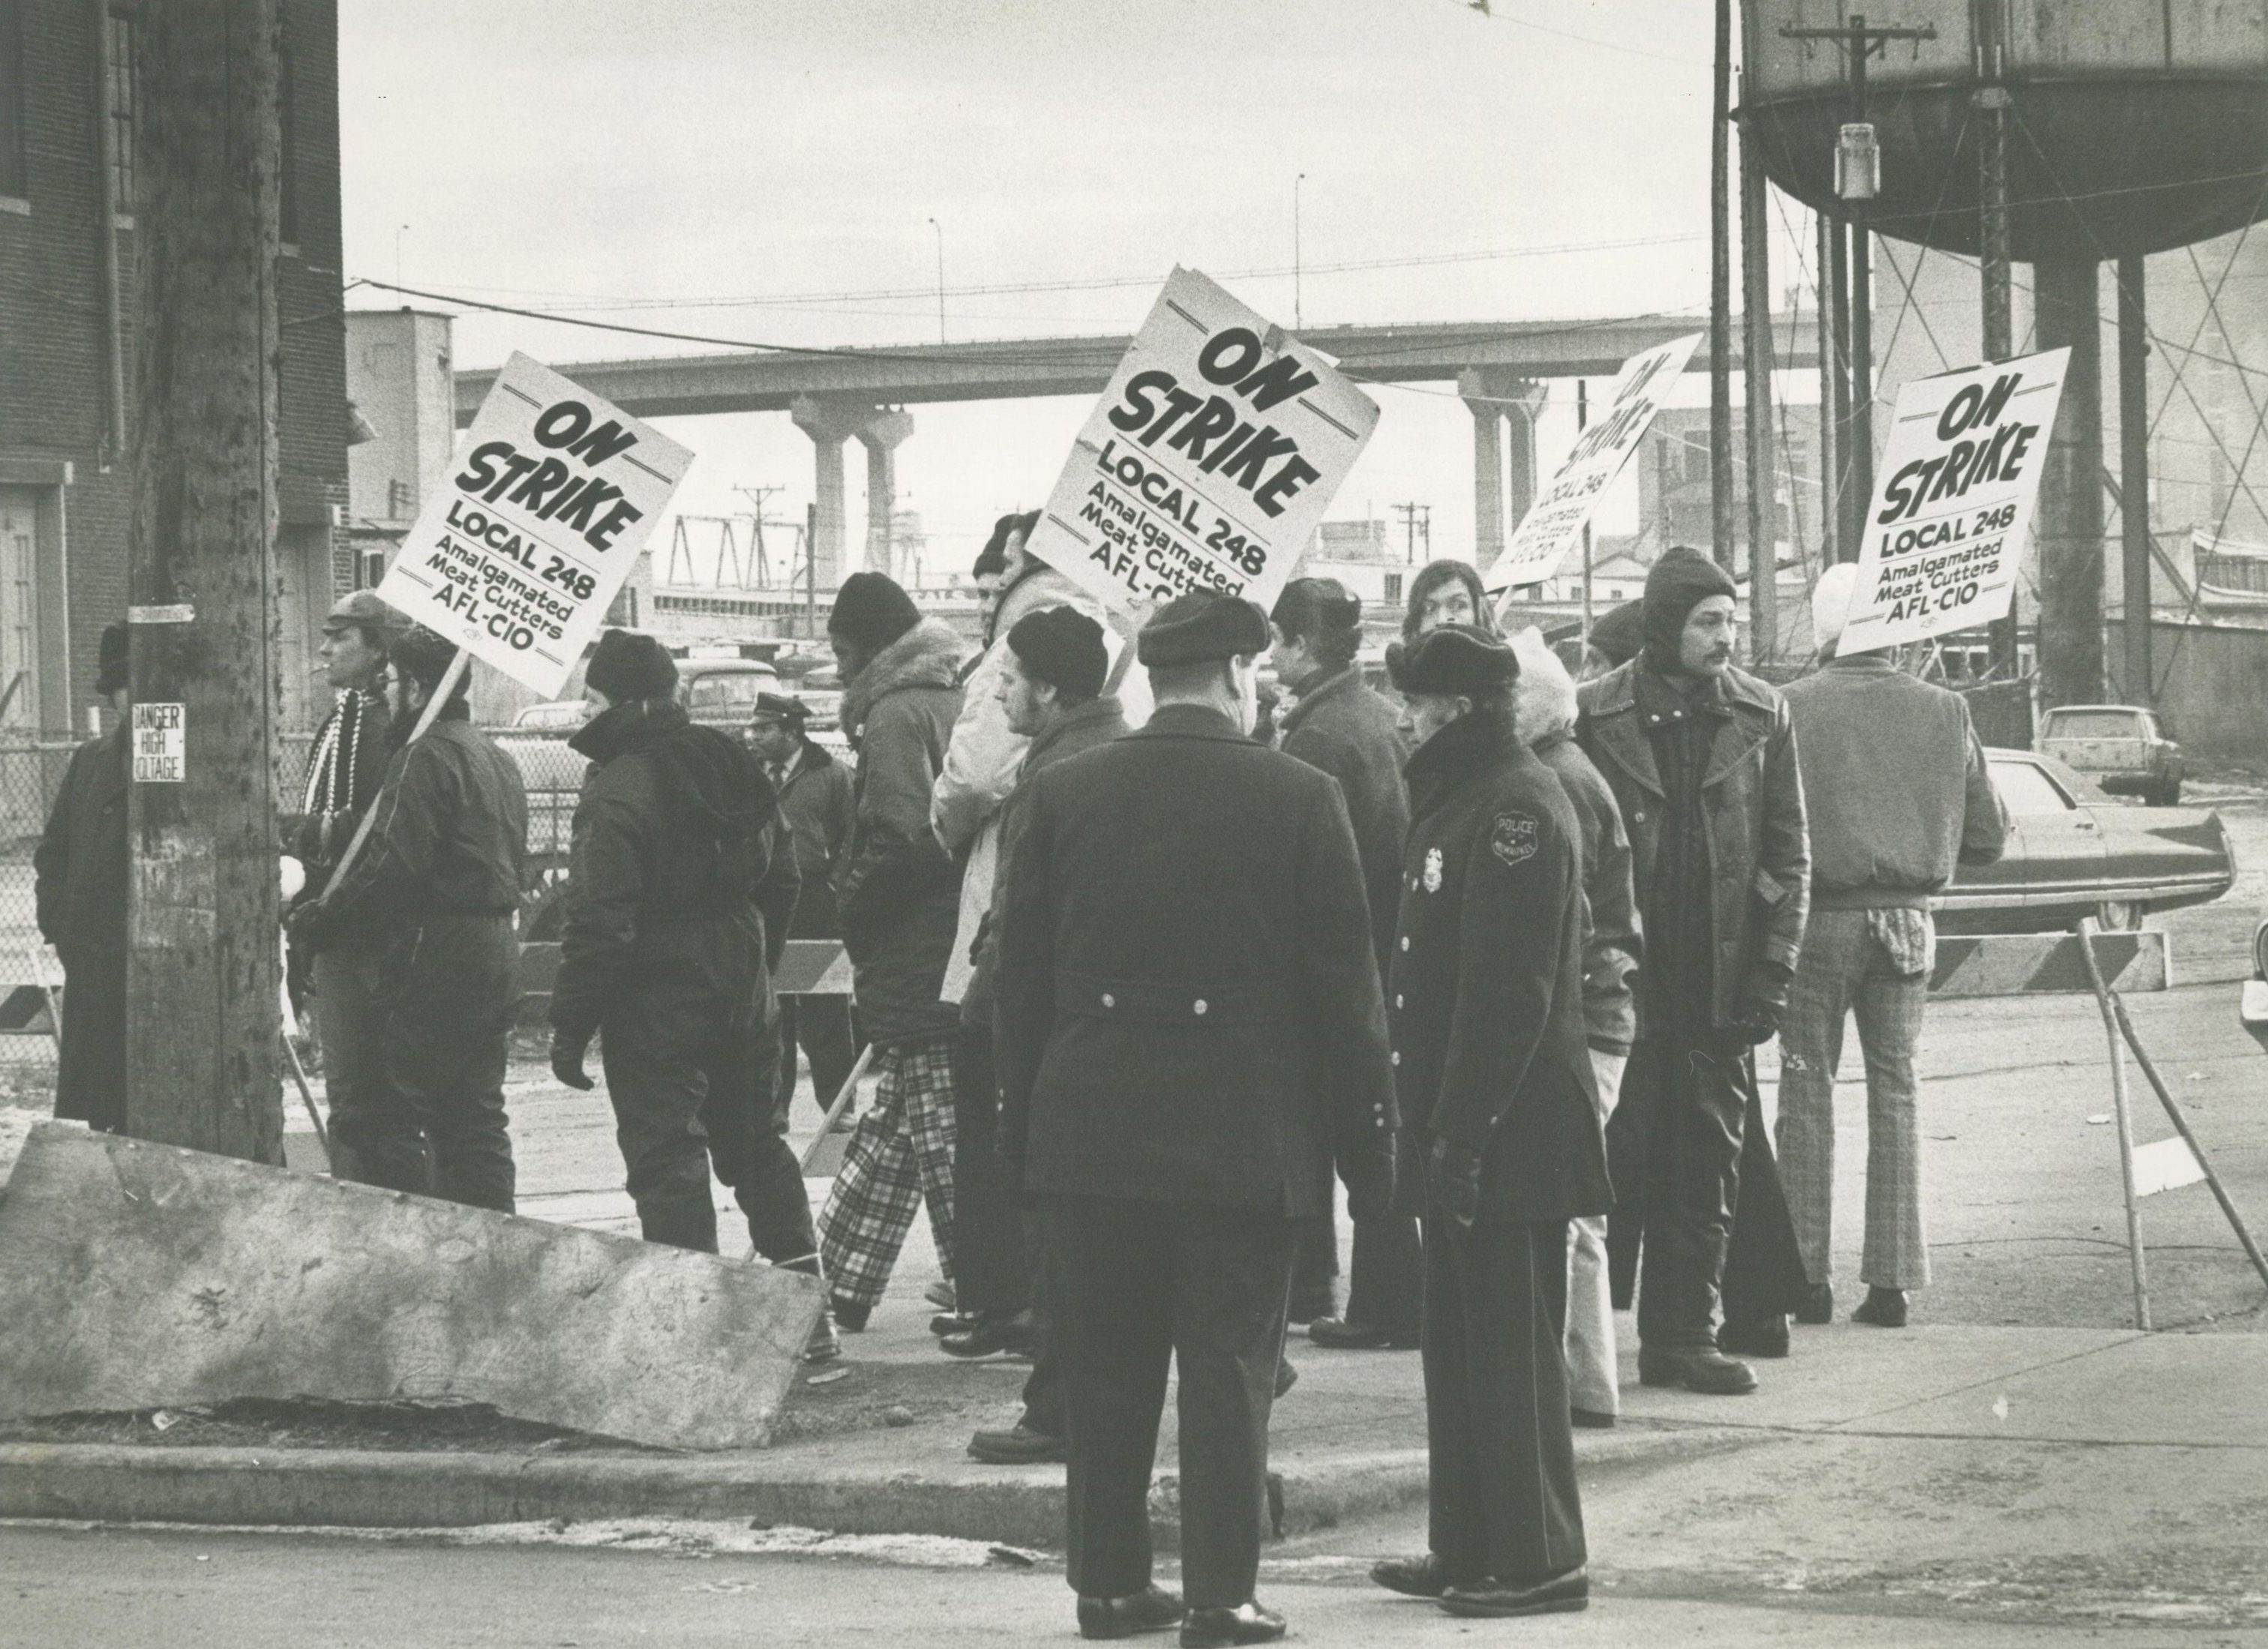 With the backing of the Milwaukee Labor Council, the Milwaukee 248 Meat Cutters Union went on strike against eight different meatpacking companies in 1975.